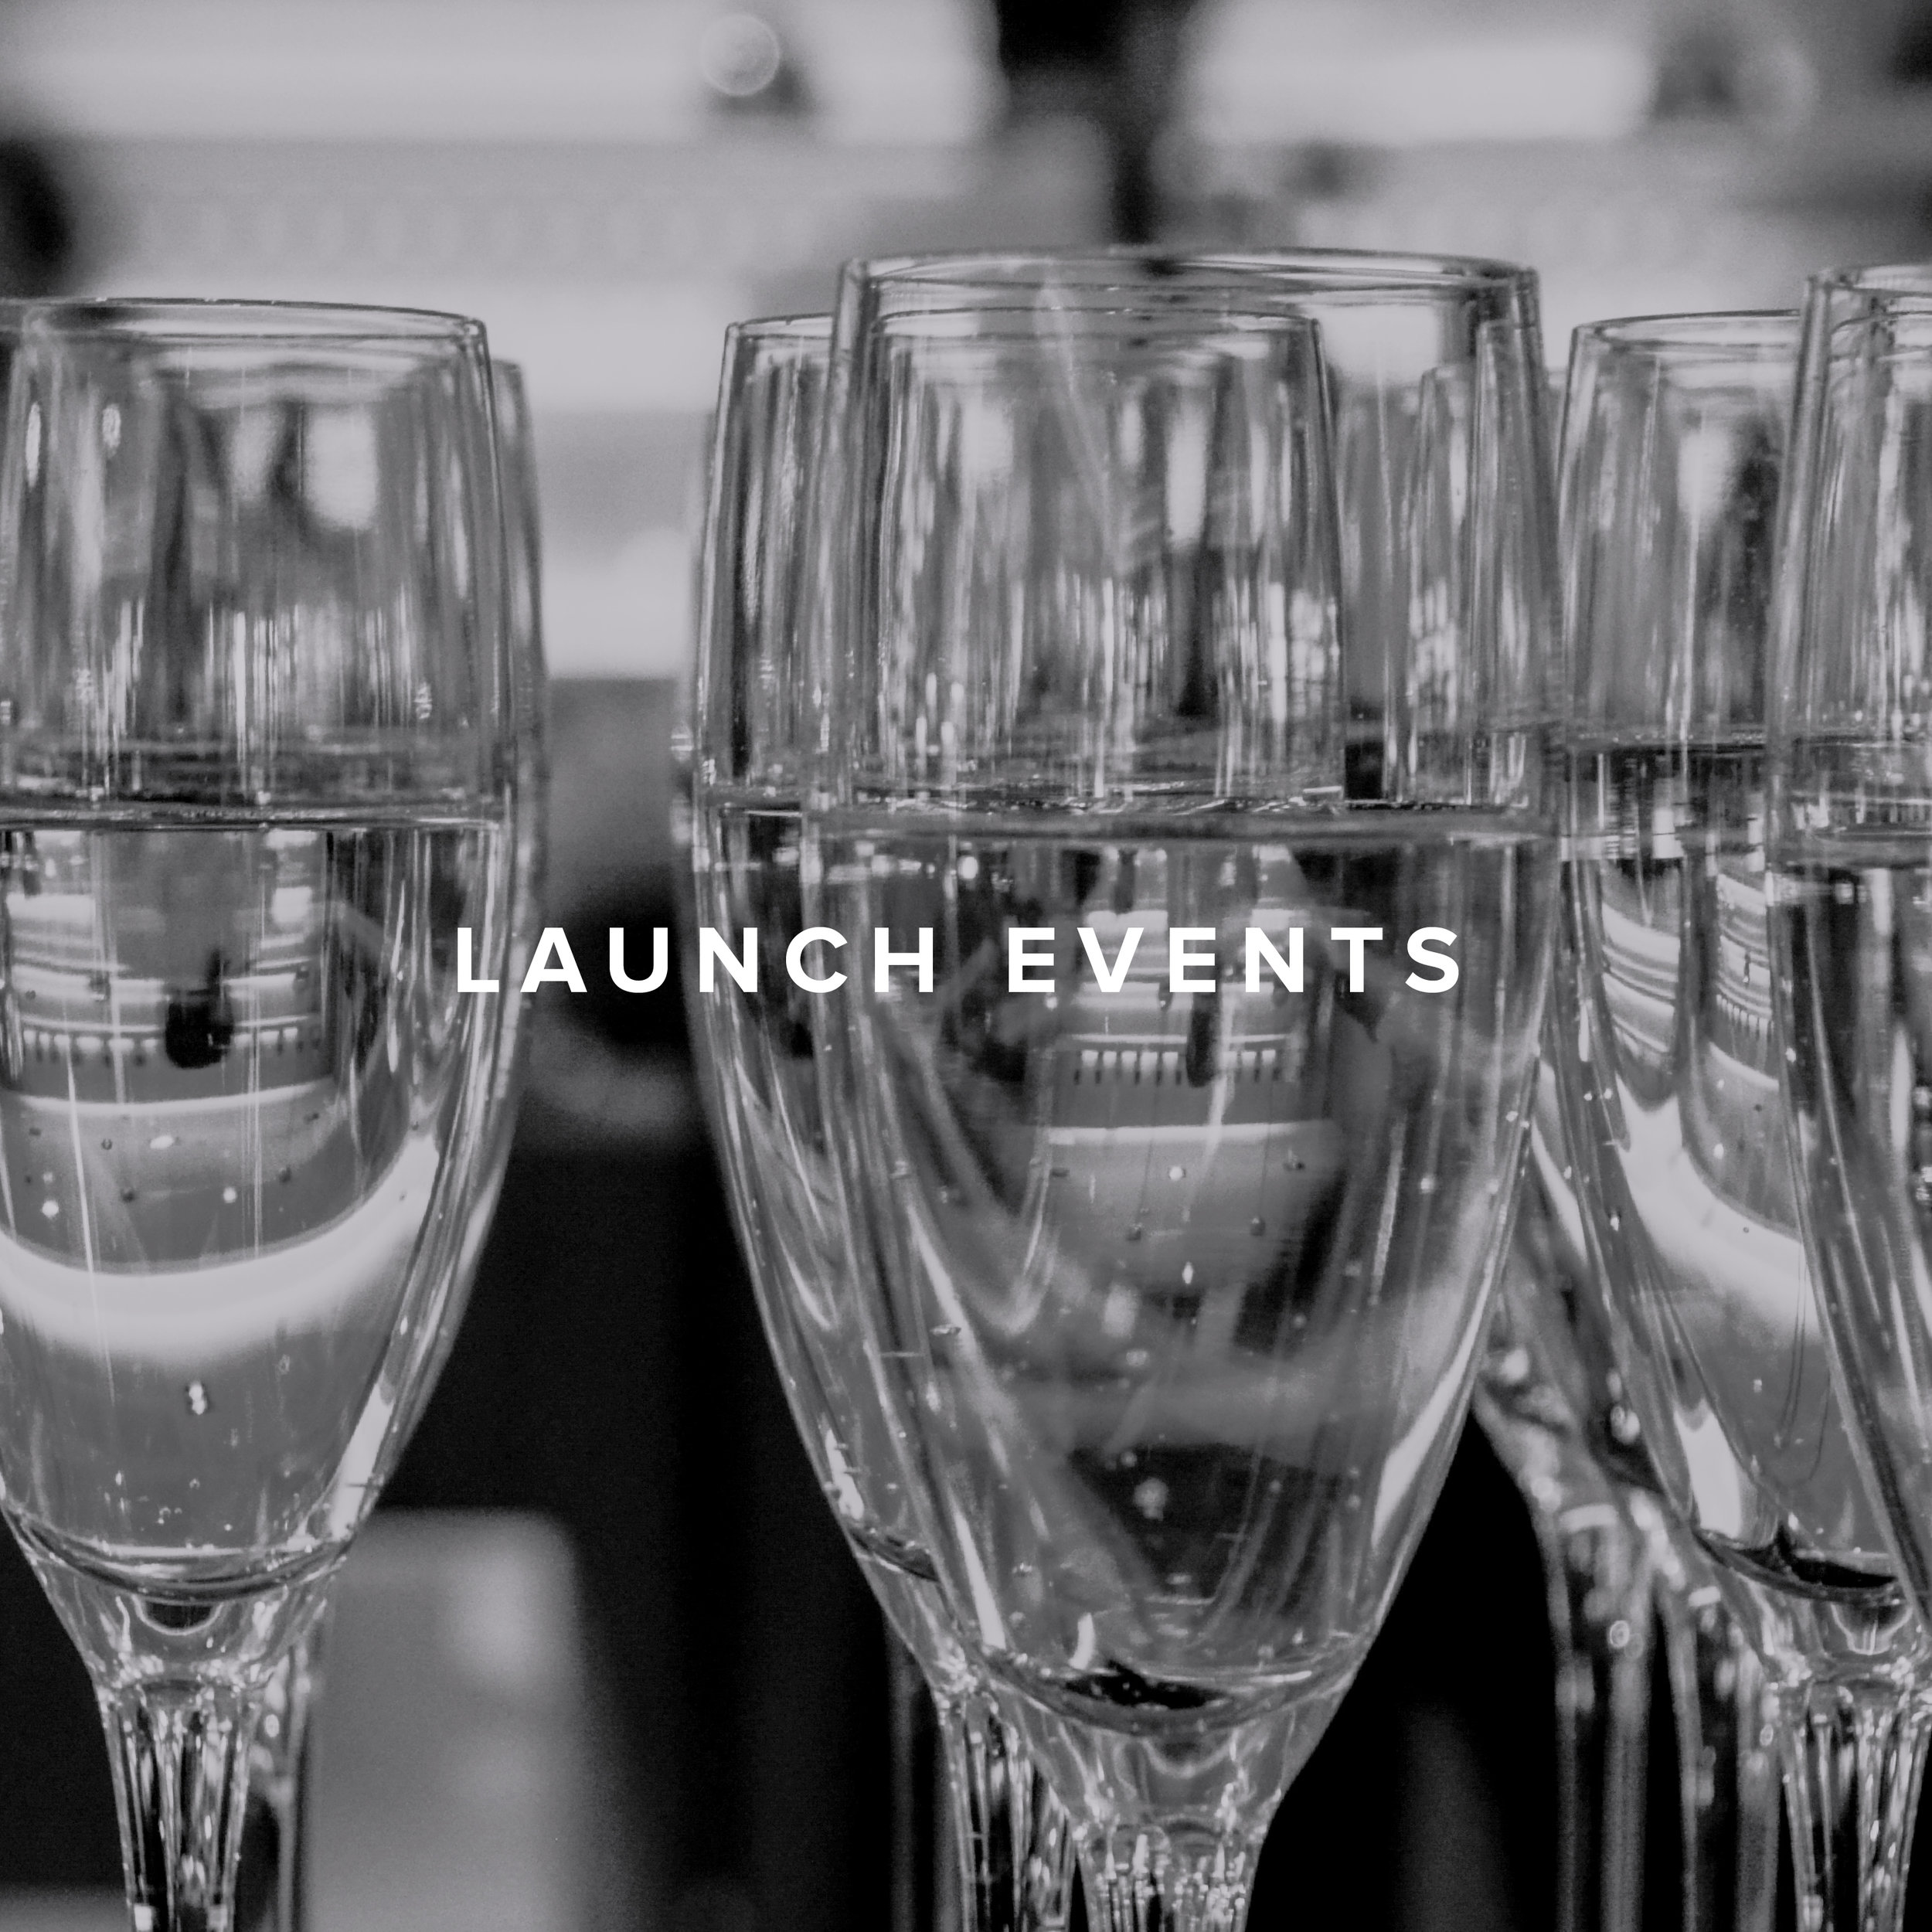 Press previews, collection launches or brand expansions; we pull our resources together to create event worth attending.